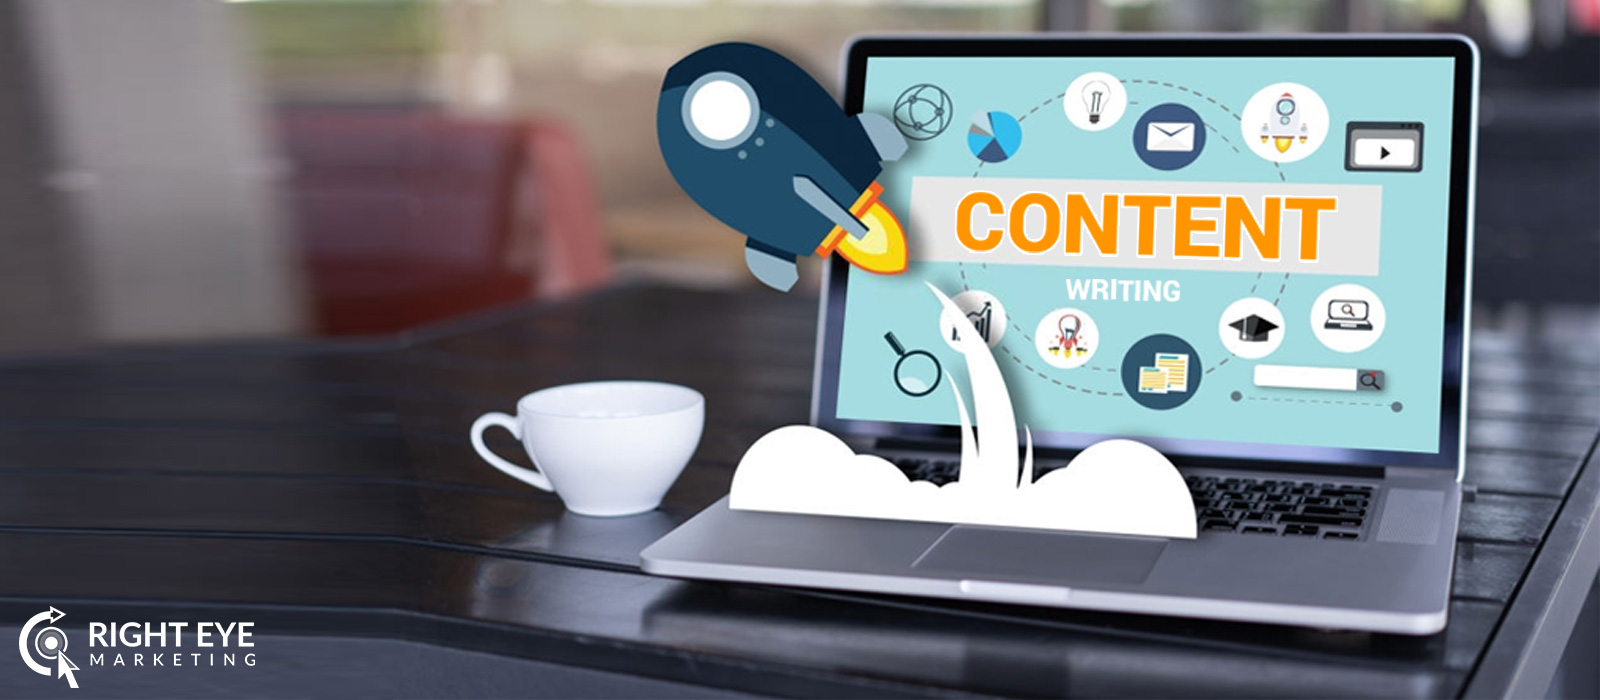 content writing services in omaha